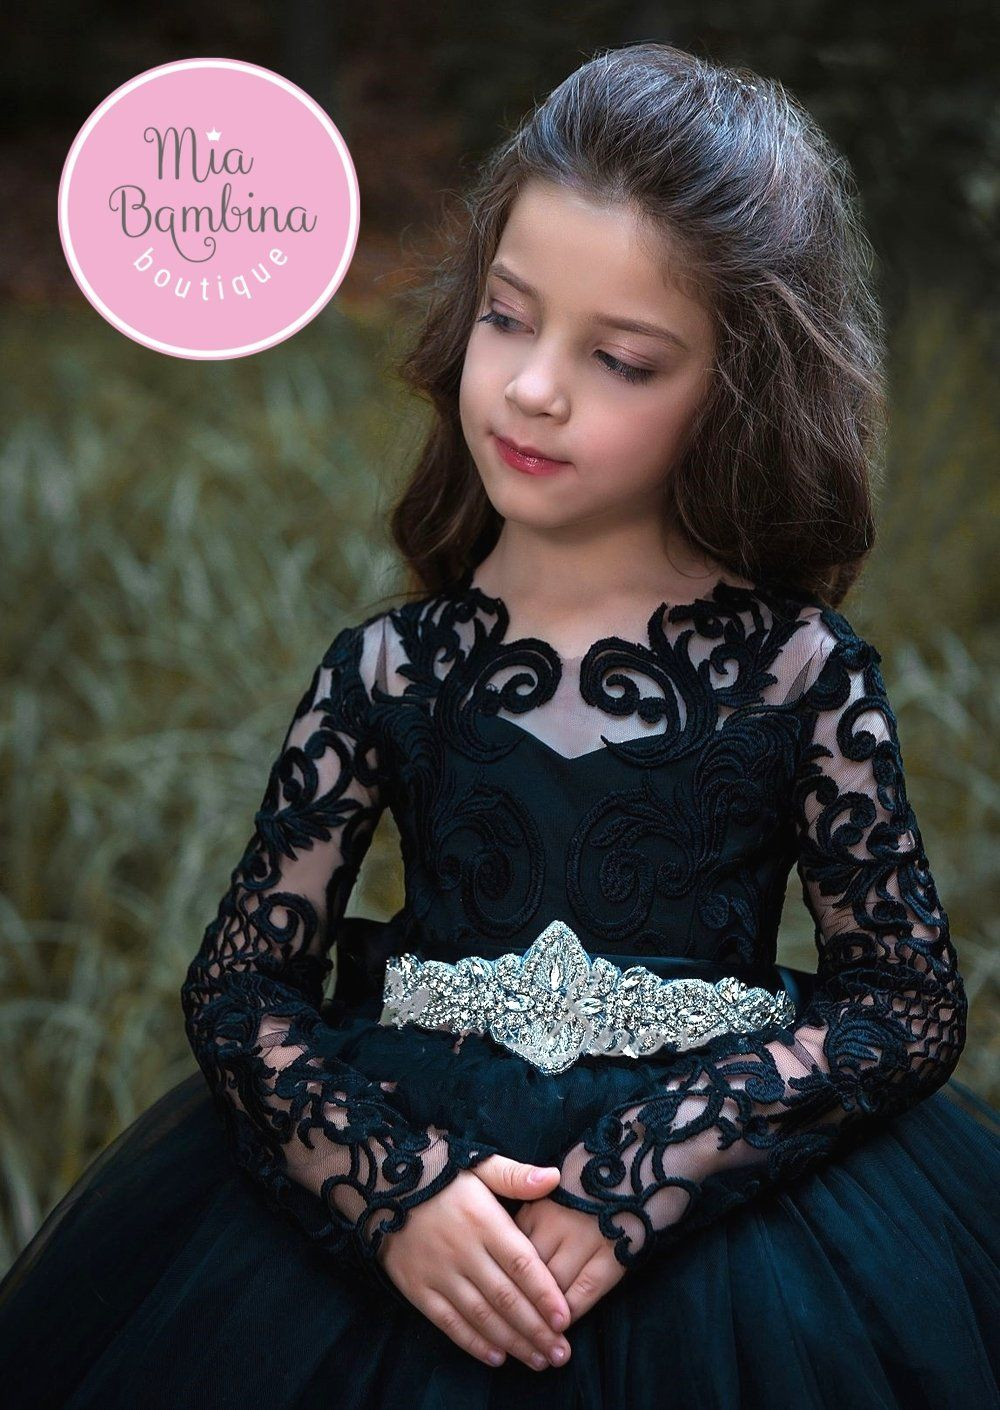 Flower Girl Dresses Muscat Flower Dress With Fitted Lace Bodice And Layered Tulle Skirt In 2021 Girls Dresses Long Sleeve Ball Gowns Girls Black Dress [ 1410 x 1000 Pixel ]